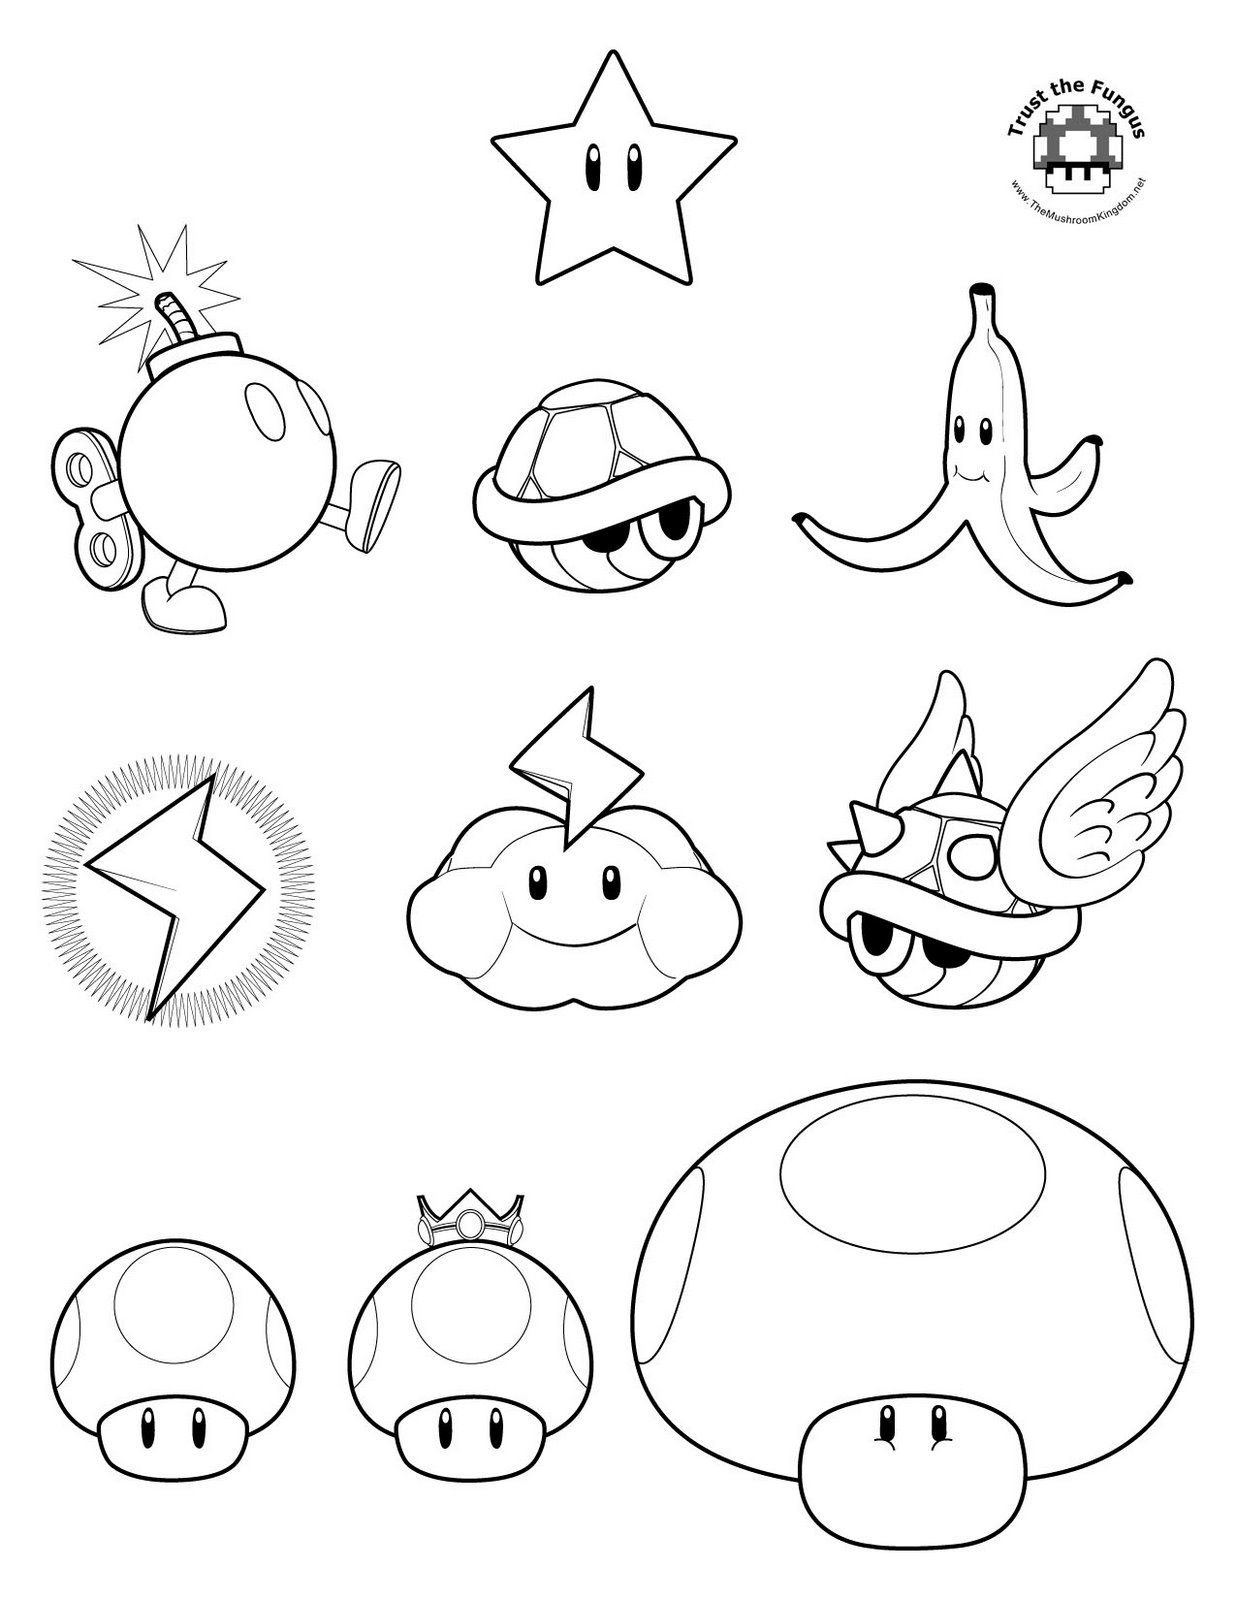 mega mario coloring pages - photo#24